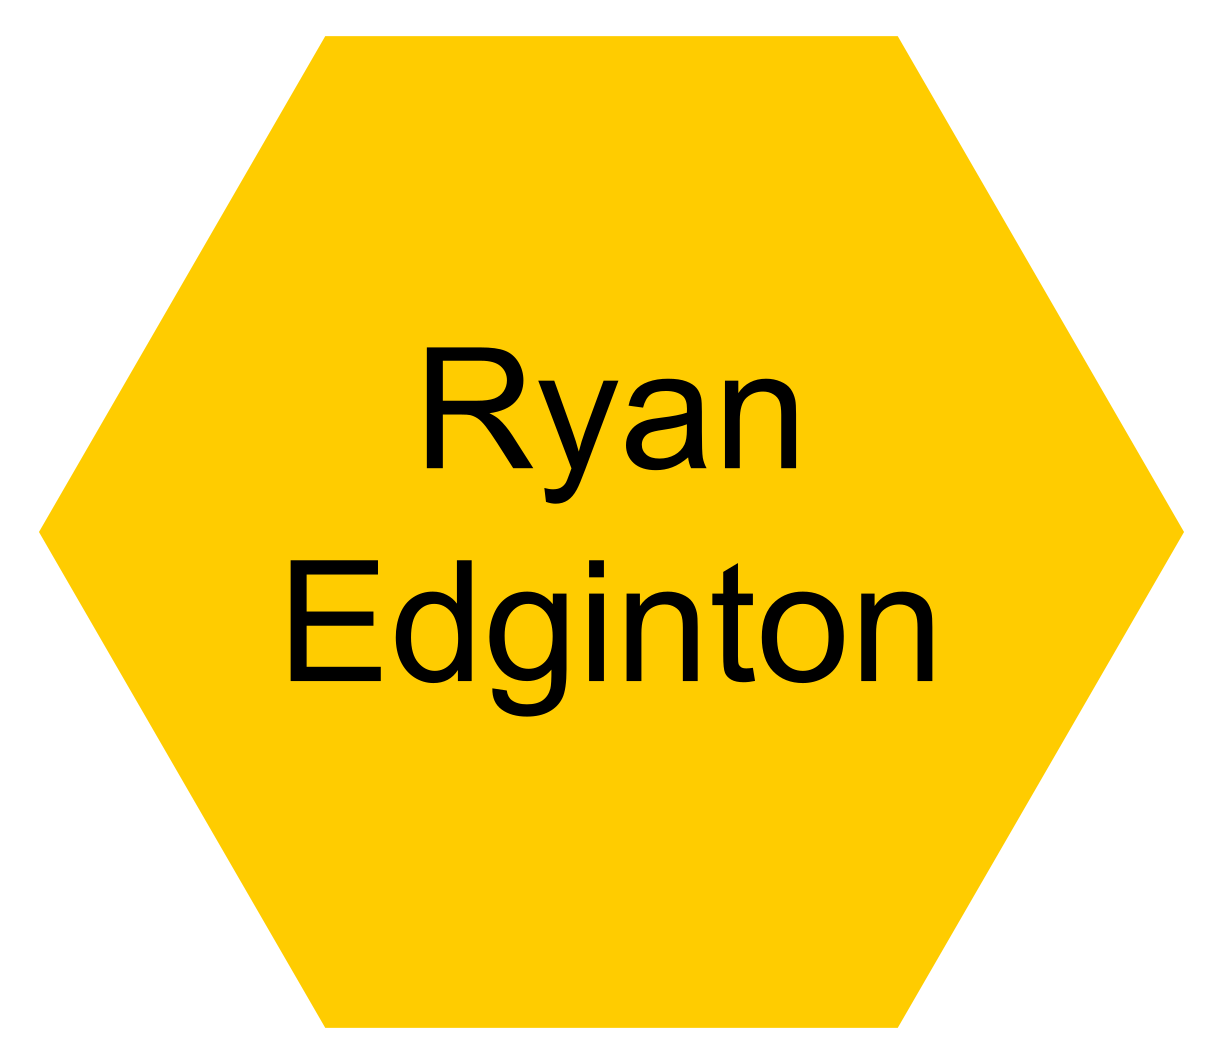 Dr. Ryan Edginton (University of Exeter: Raman Nanotheranostics Communities Engagement Manager) - Click this icon to reveal their contact details.